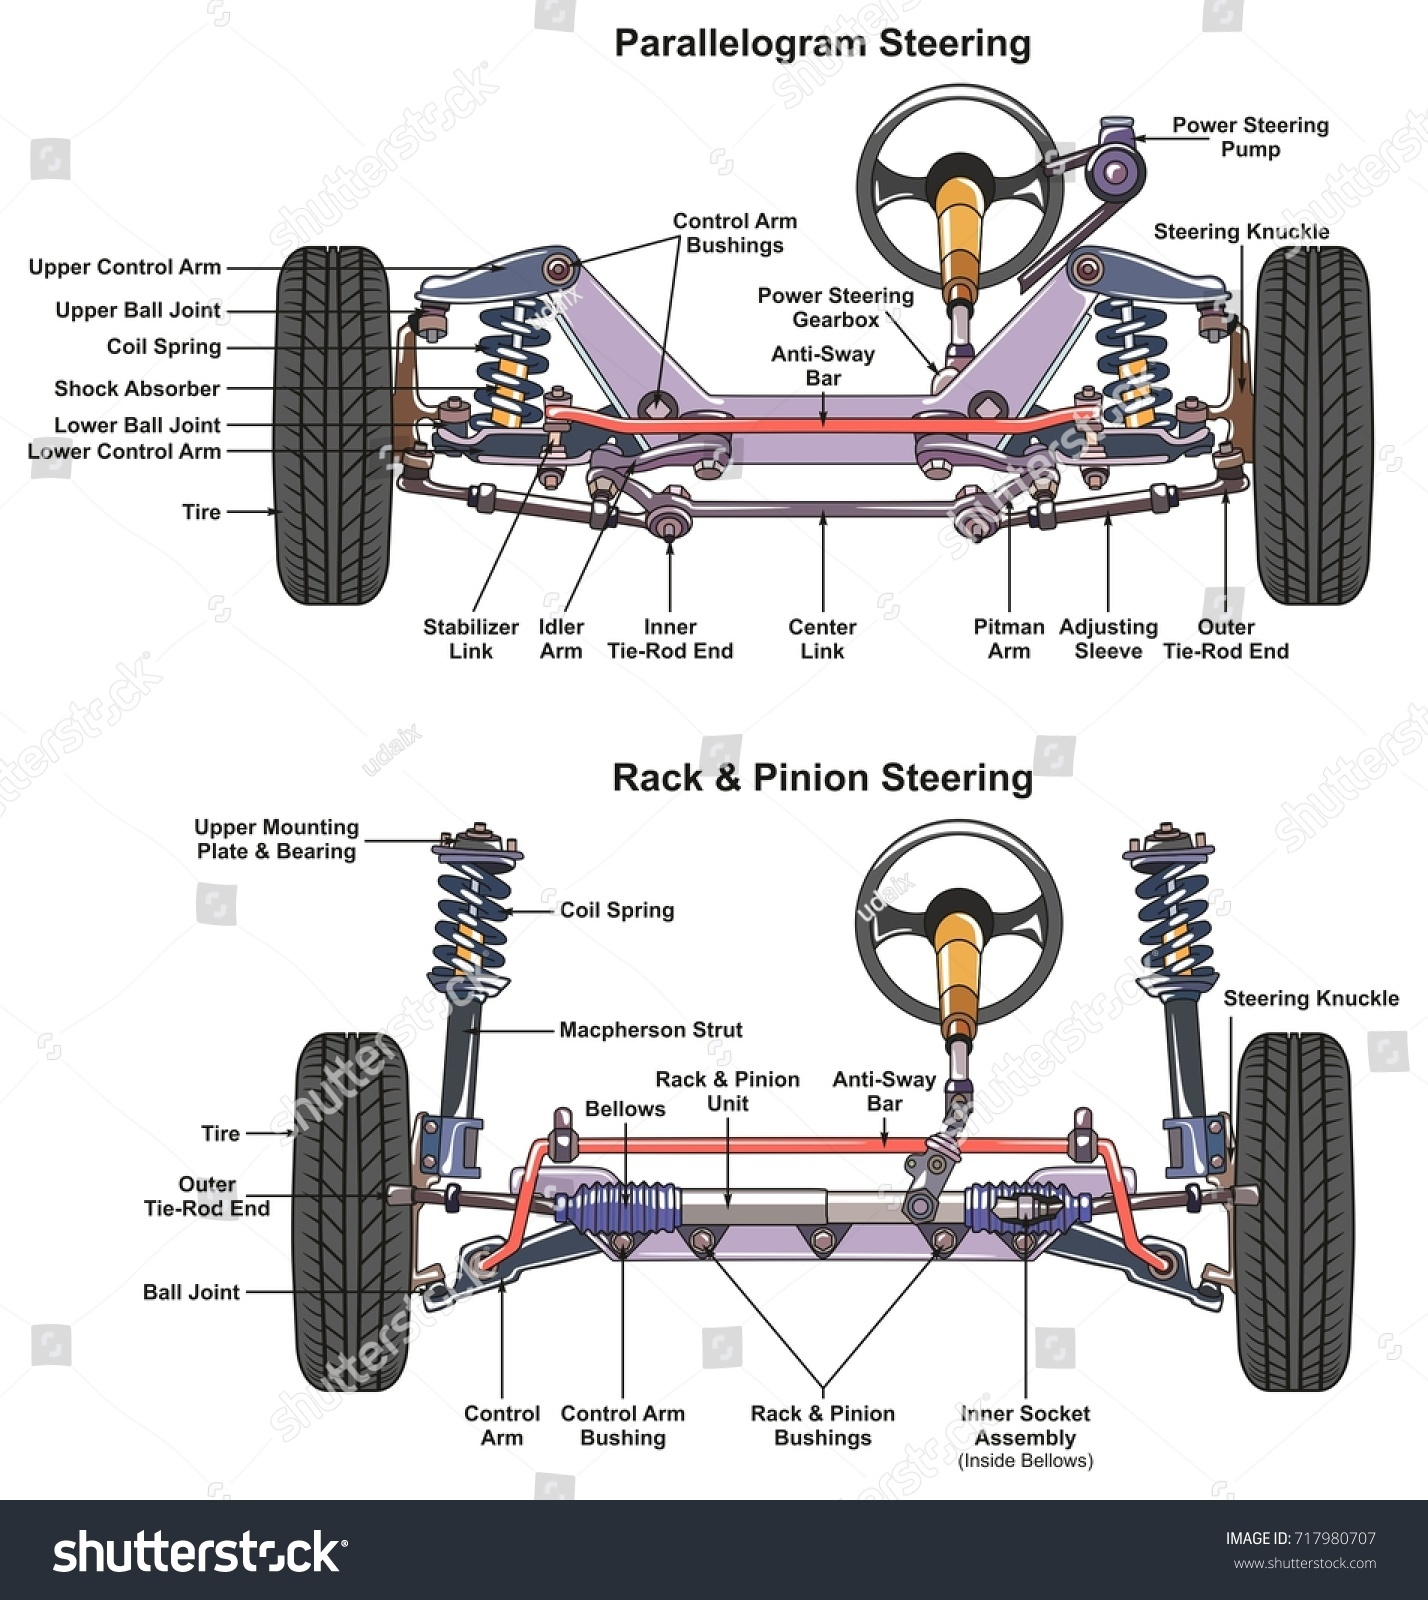 rack and pinion steering diagram 1983 ford f150 ignition switch wiring automotive system infographic showing